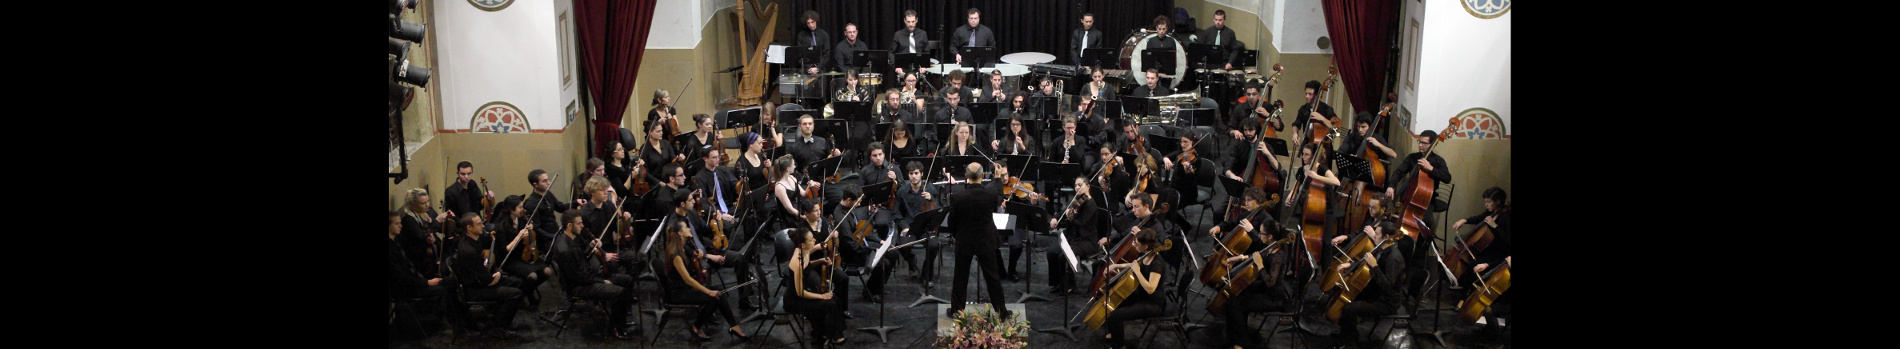 From East to West -  A joint concert of the Jerusalem Symphony Orchestra and JAMD Mendi Rodan Symphony Orchestra